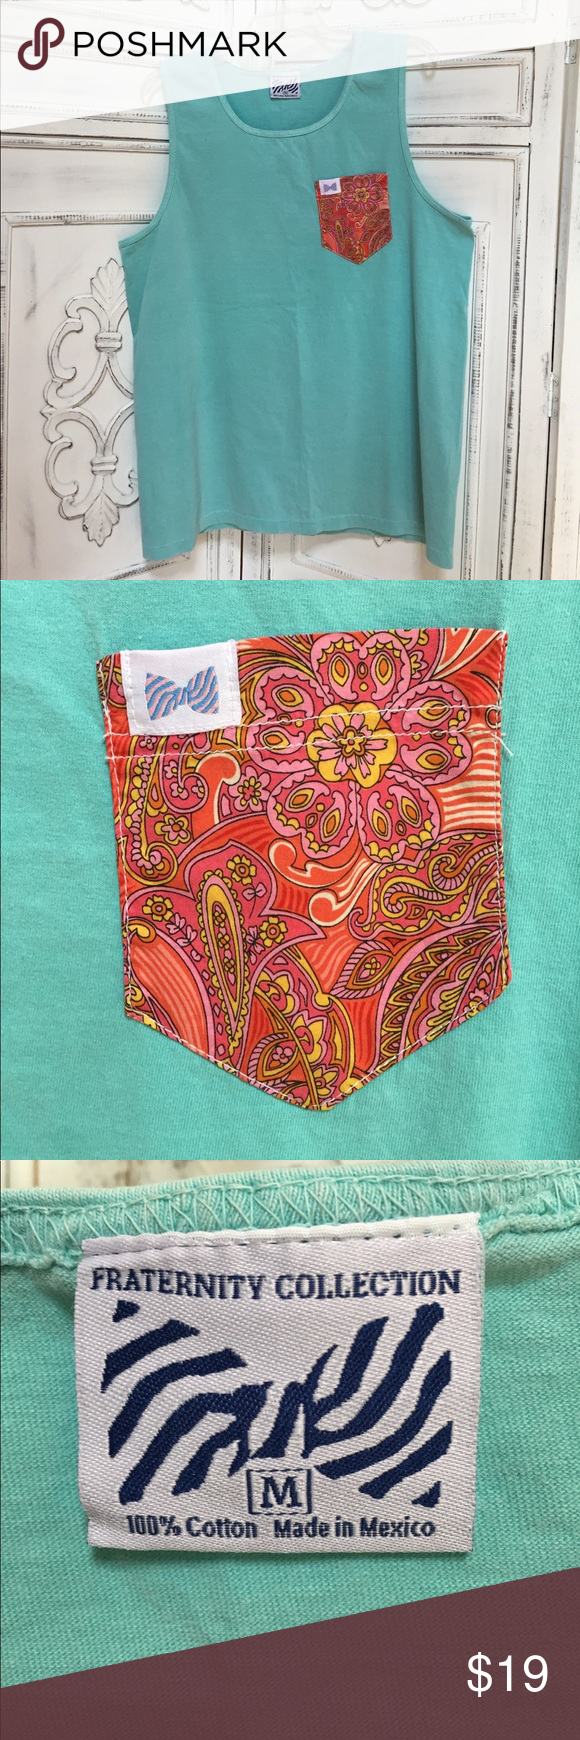 Fraternity Collection Tank Top with Paisley Pocket Size medium. 100% cotton. Great condition! Fraternity Collection Tops Tank Tops